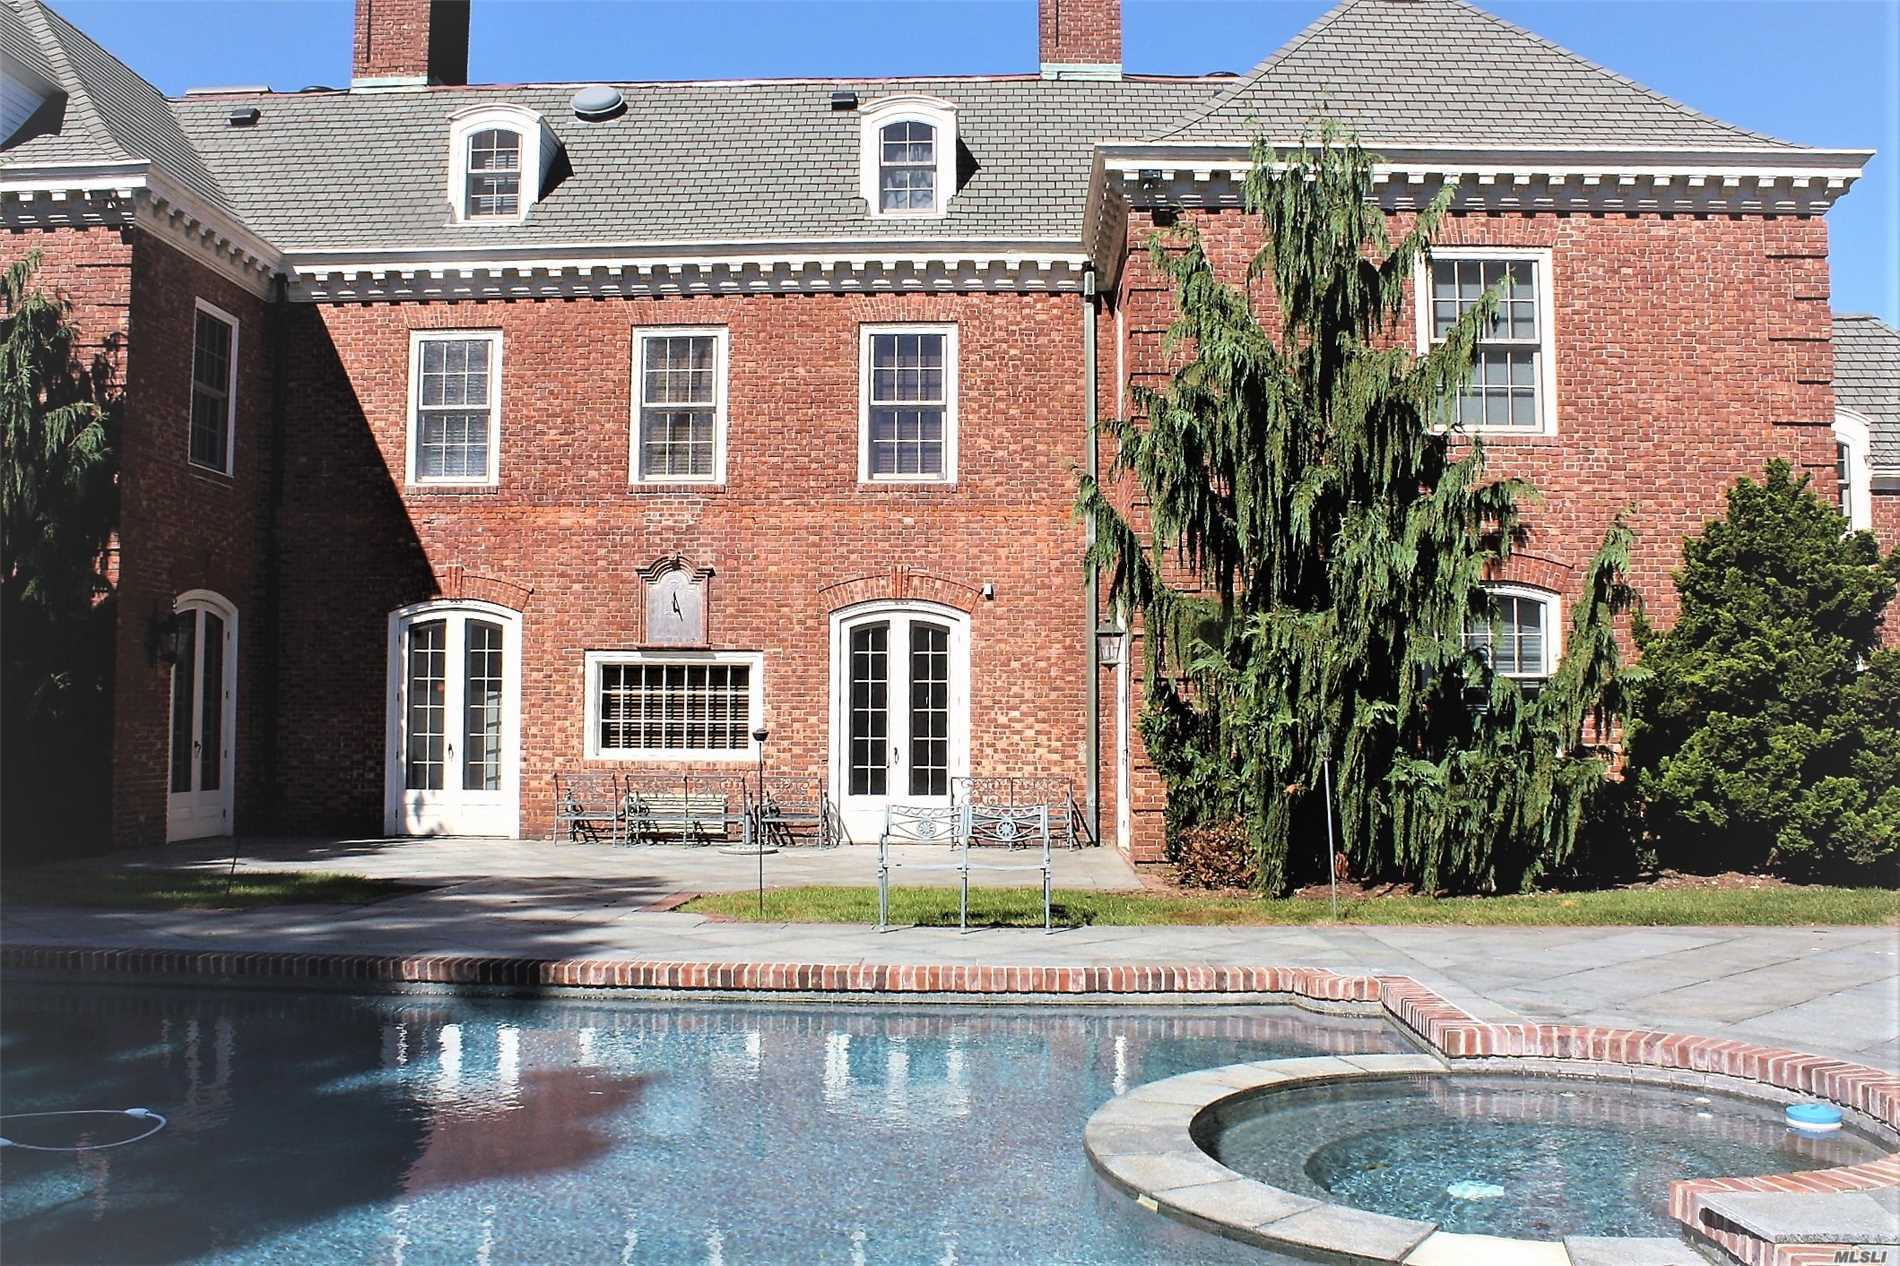 Old World Charm.Impressive Brick Estate With Fine Architectural Details, Set On 2 Bucolic Acres W/Pond, Ensuite Bedrooms, Large Master Suite With His/Her Baths. Formal Dining And Ball Room Are Impressive For Entertaining. Multiple Sets Of French Doors Lead Out To The Gorgeous Heated, Salt Water Pool With Spa And Cabana. Garages For 3 Cars And A Har-Tru Tennis Court Add To This Amazing Property. Syosset Sd#2. Convenient To All Major Commuting Lines And Highways. Oversized Rooms.